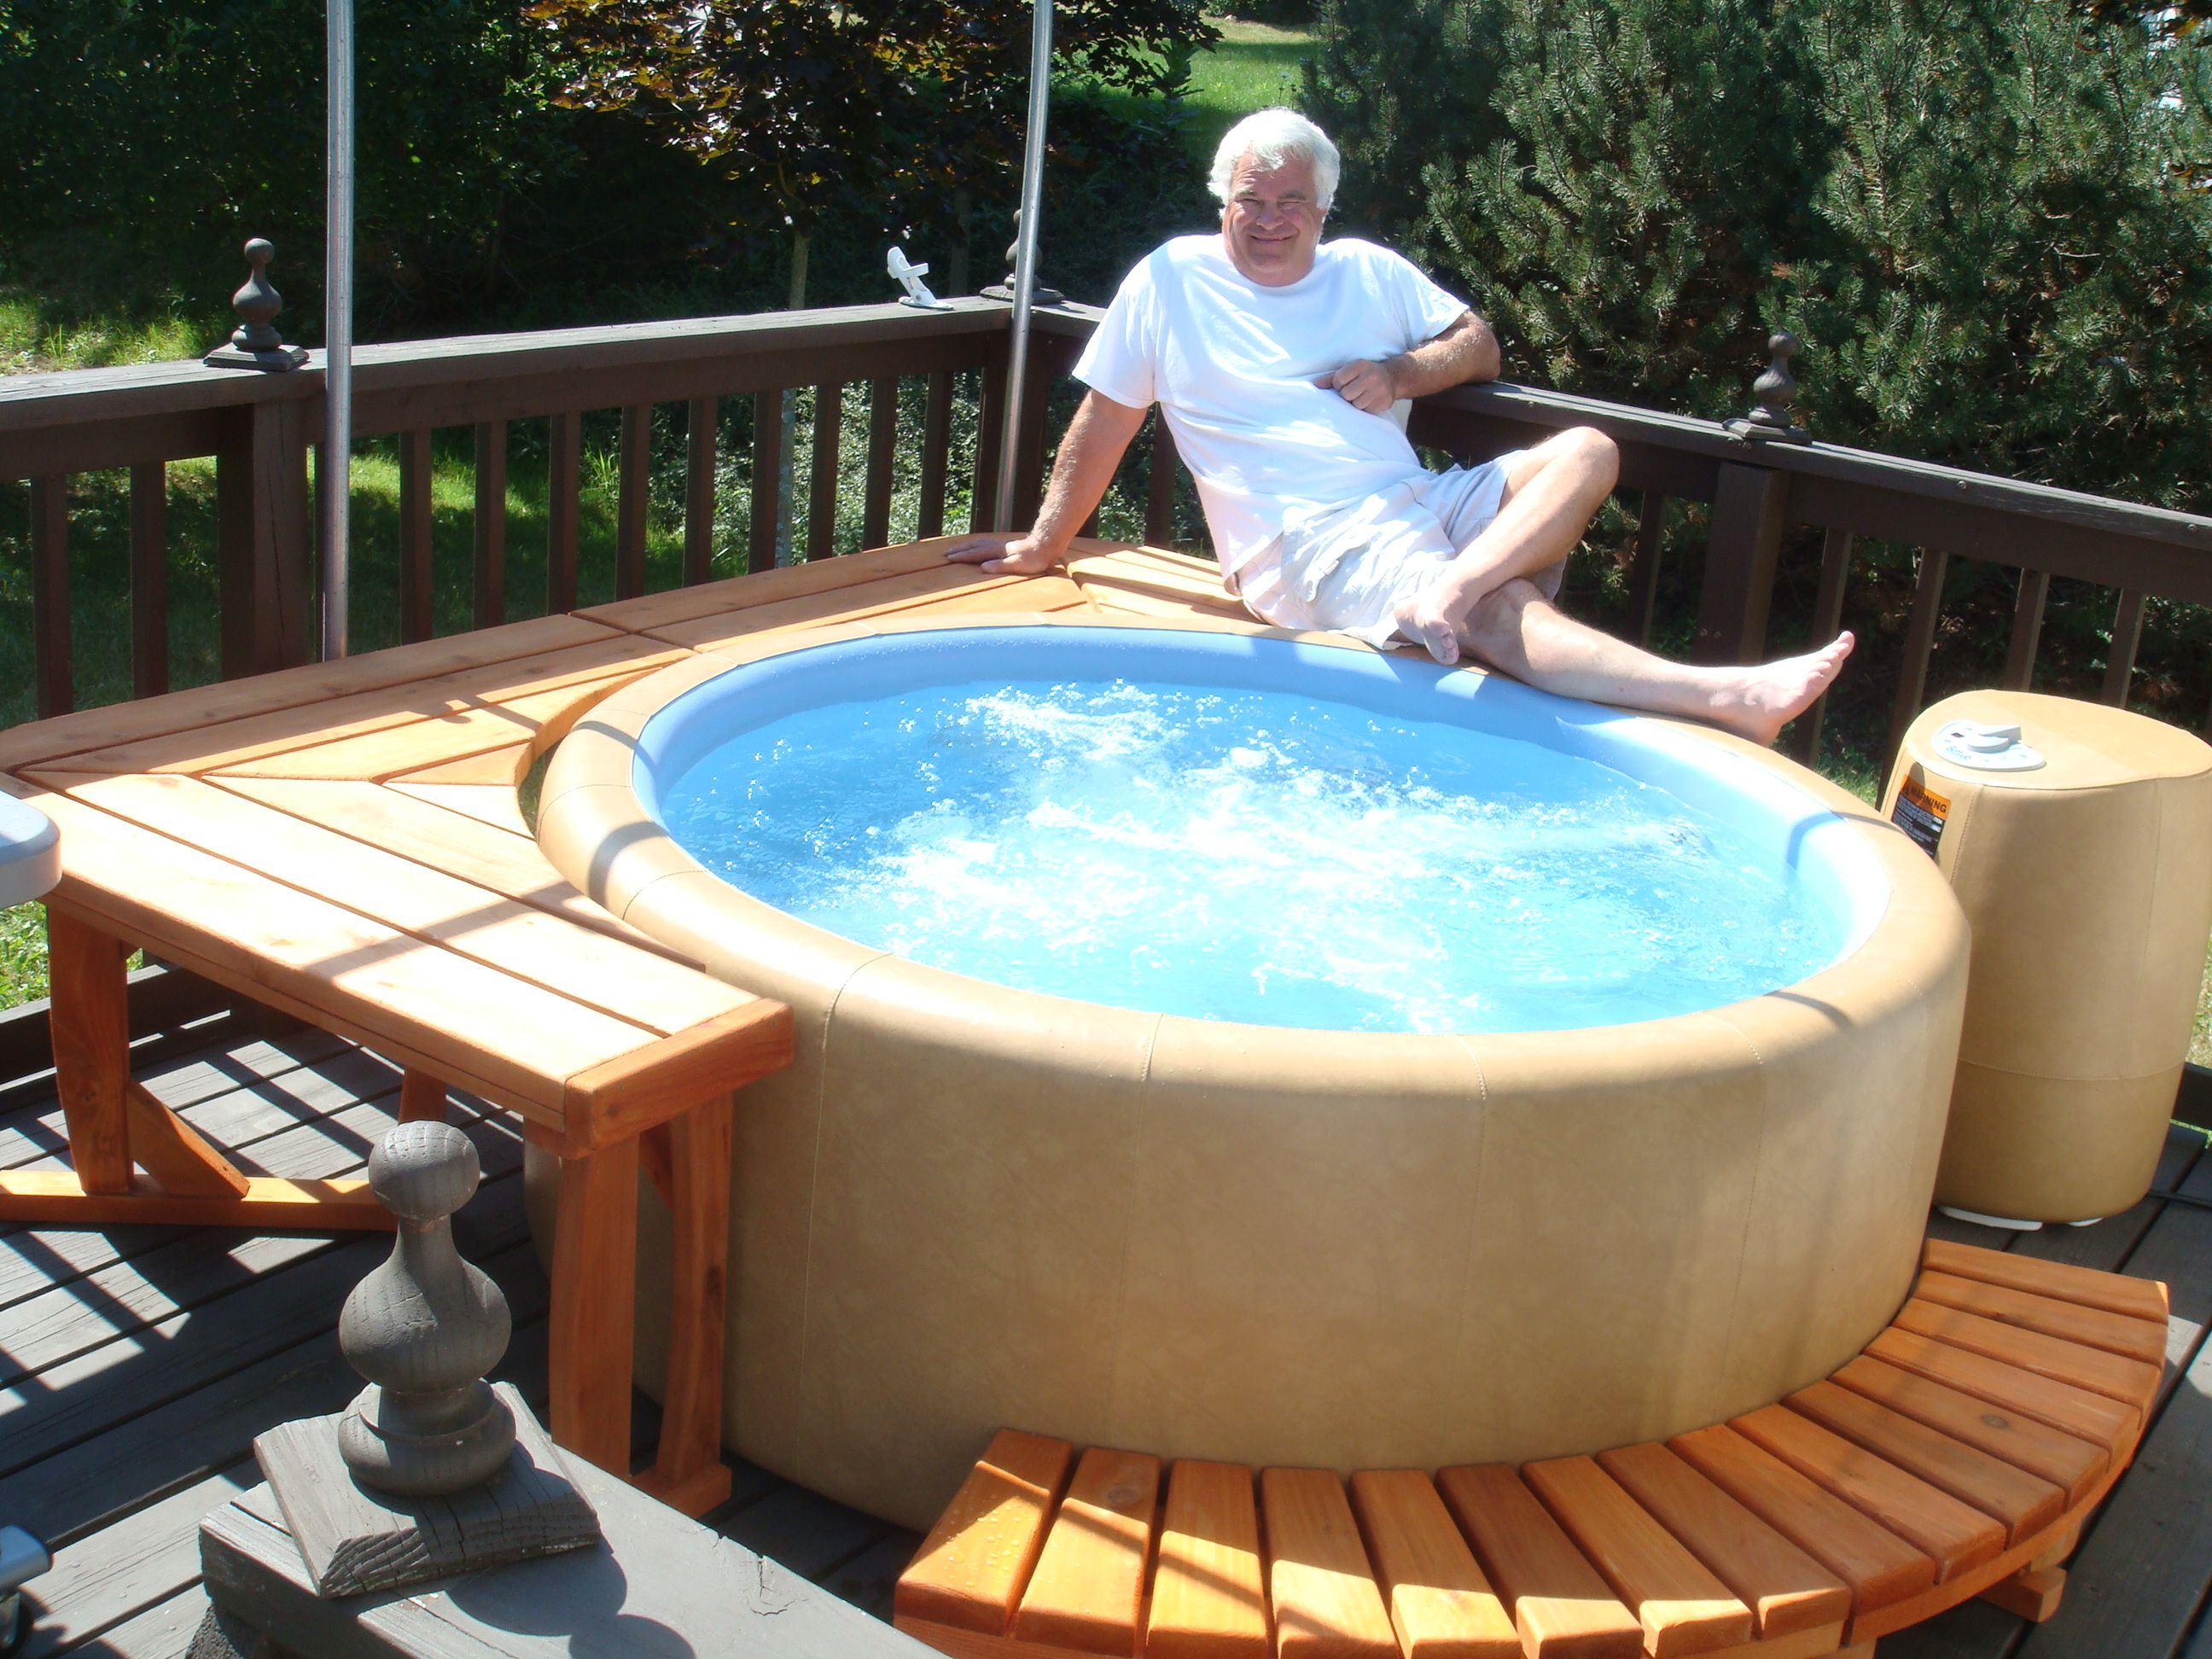 Jacuzzi Pool Aufblasbar A T220 Softub With Part Of Our Square Cedar Surround